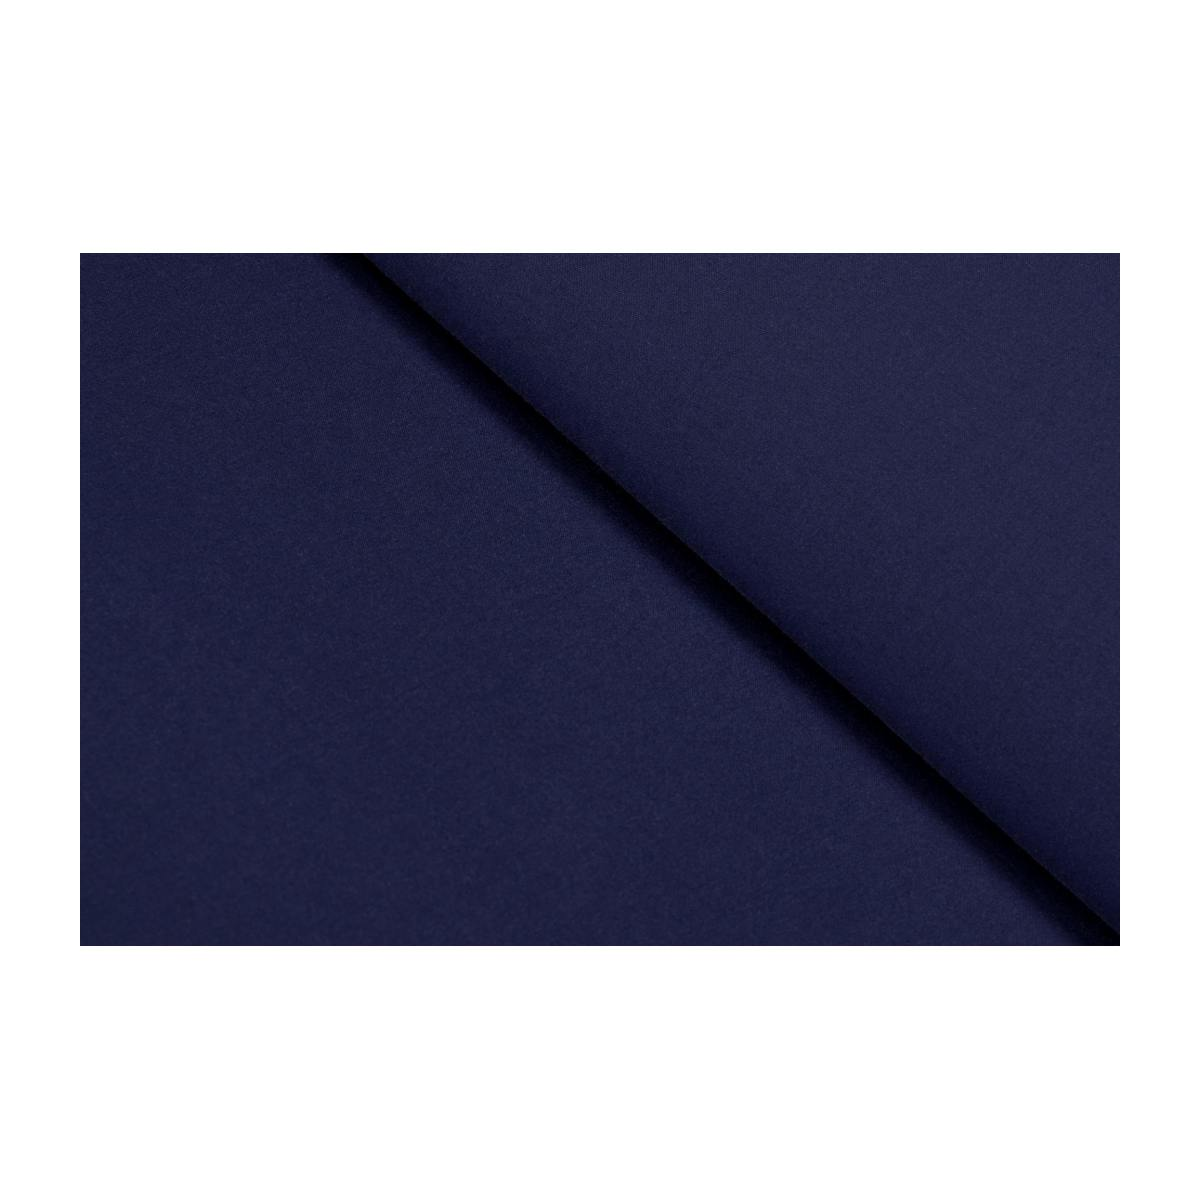 Duvet cover 200x200, dark blue n°2